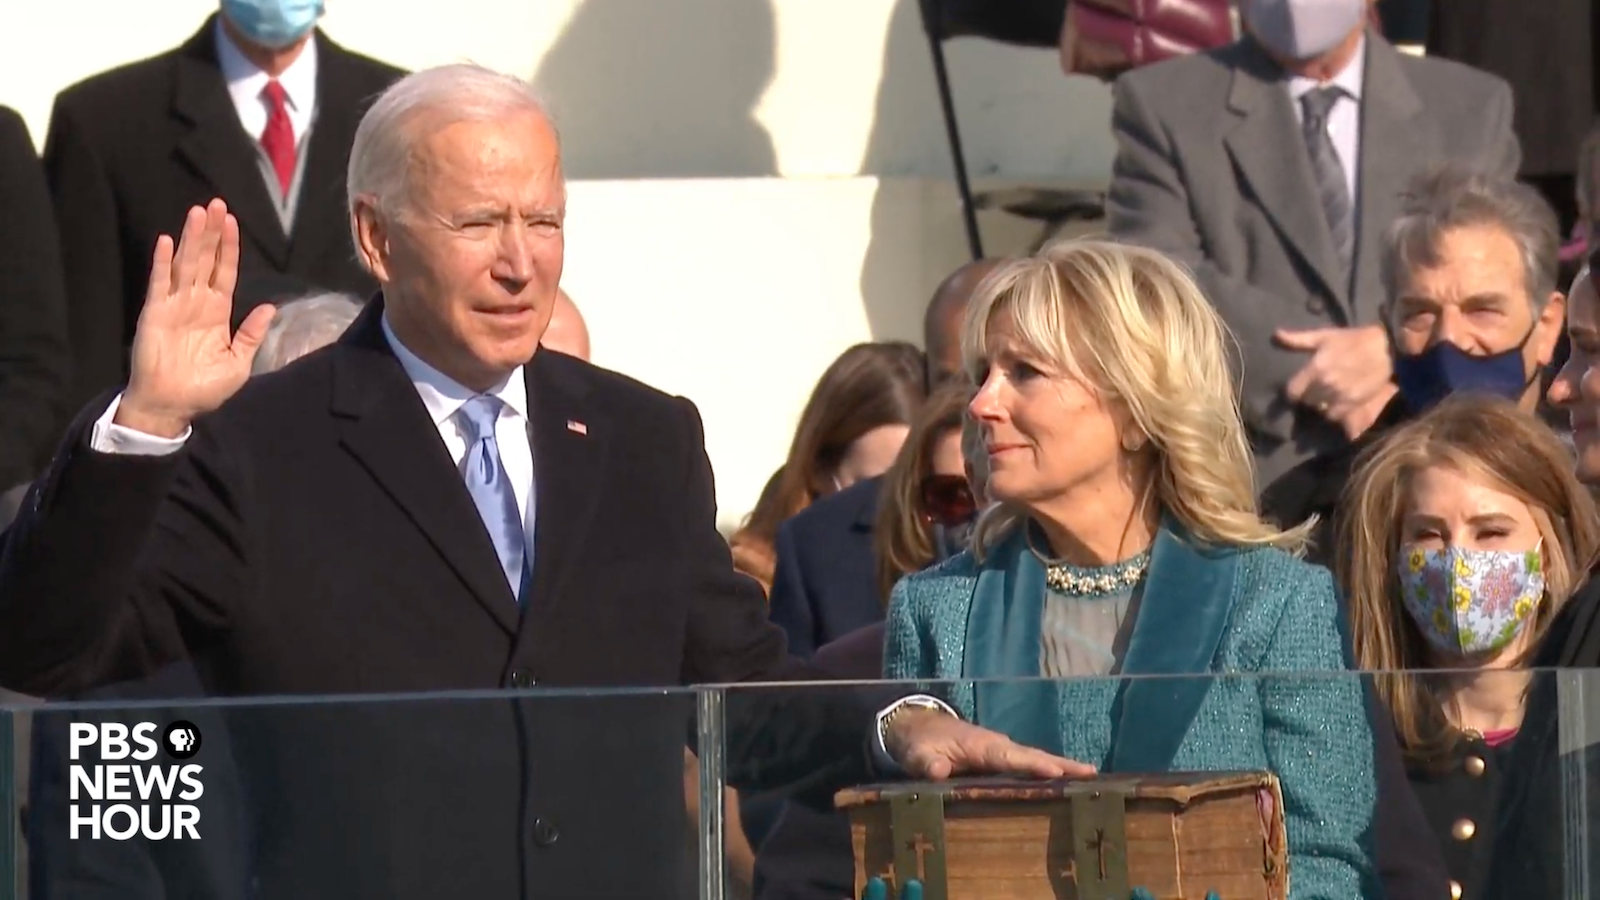 Joe Biden with his hand on a bible held by Jill Biden, swearing in to be the 46th president of the United States.